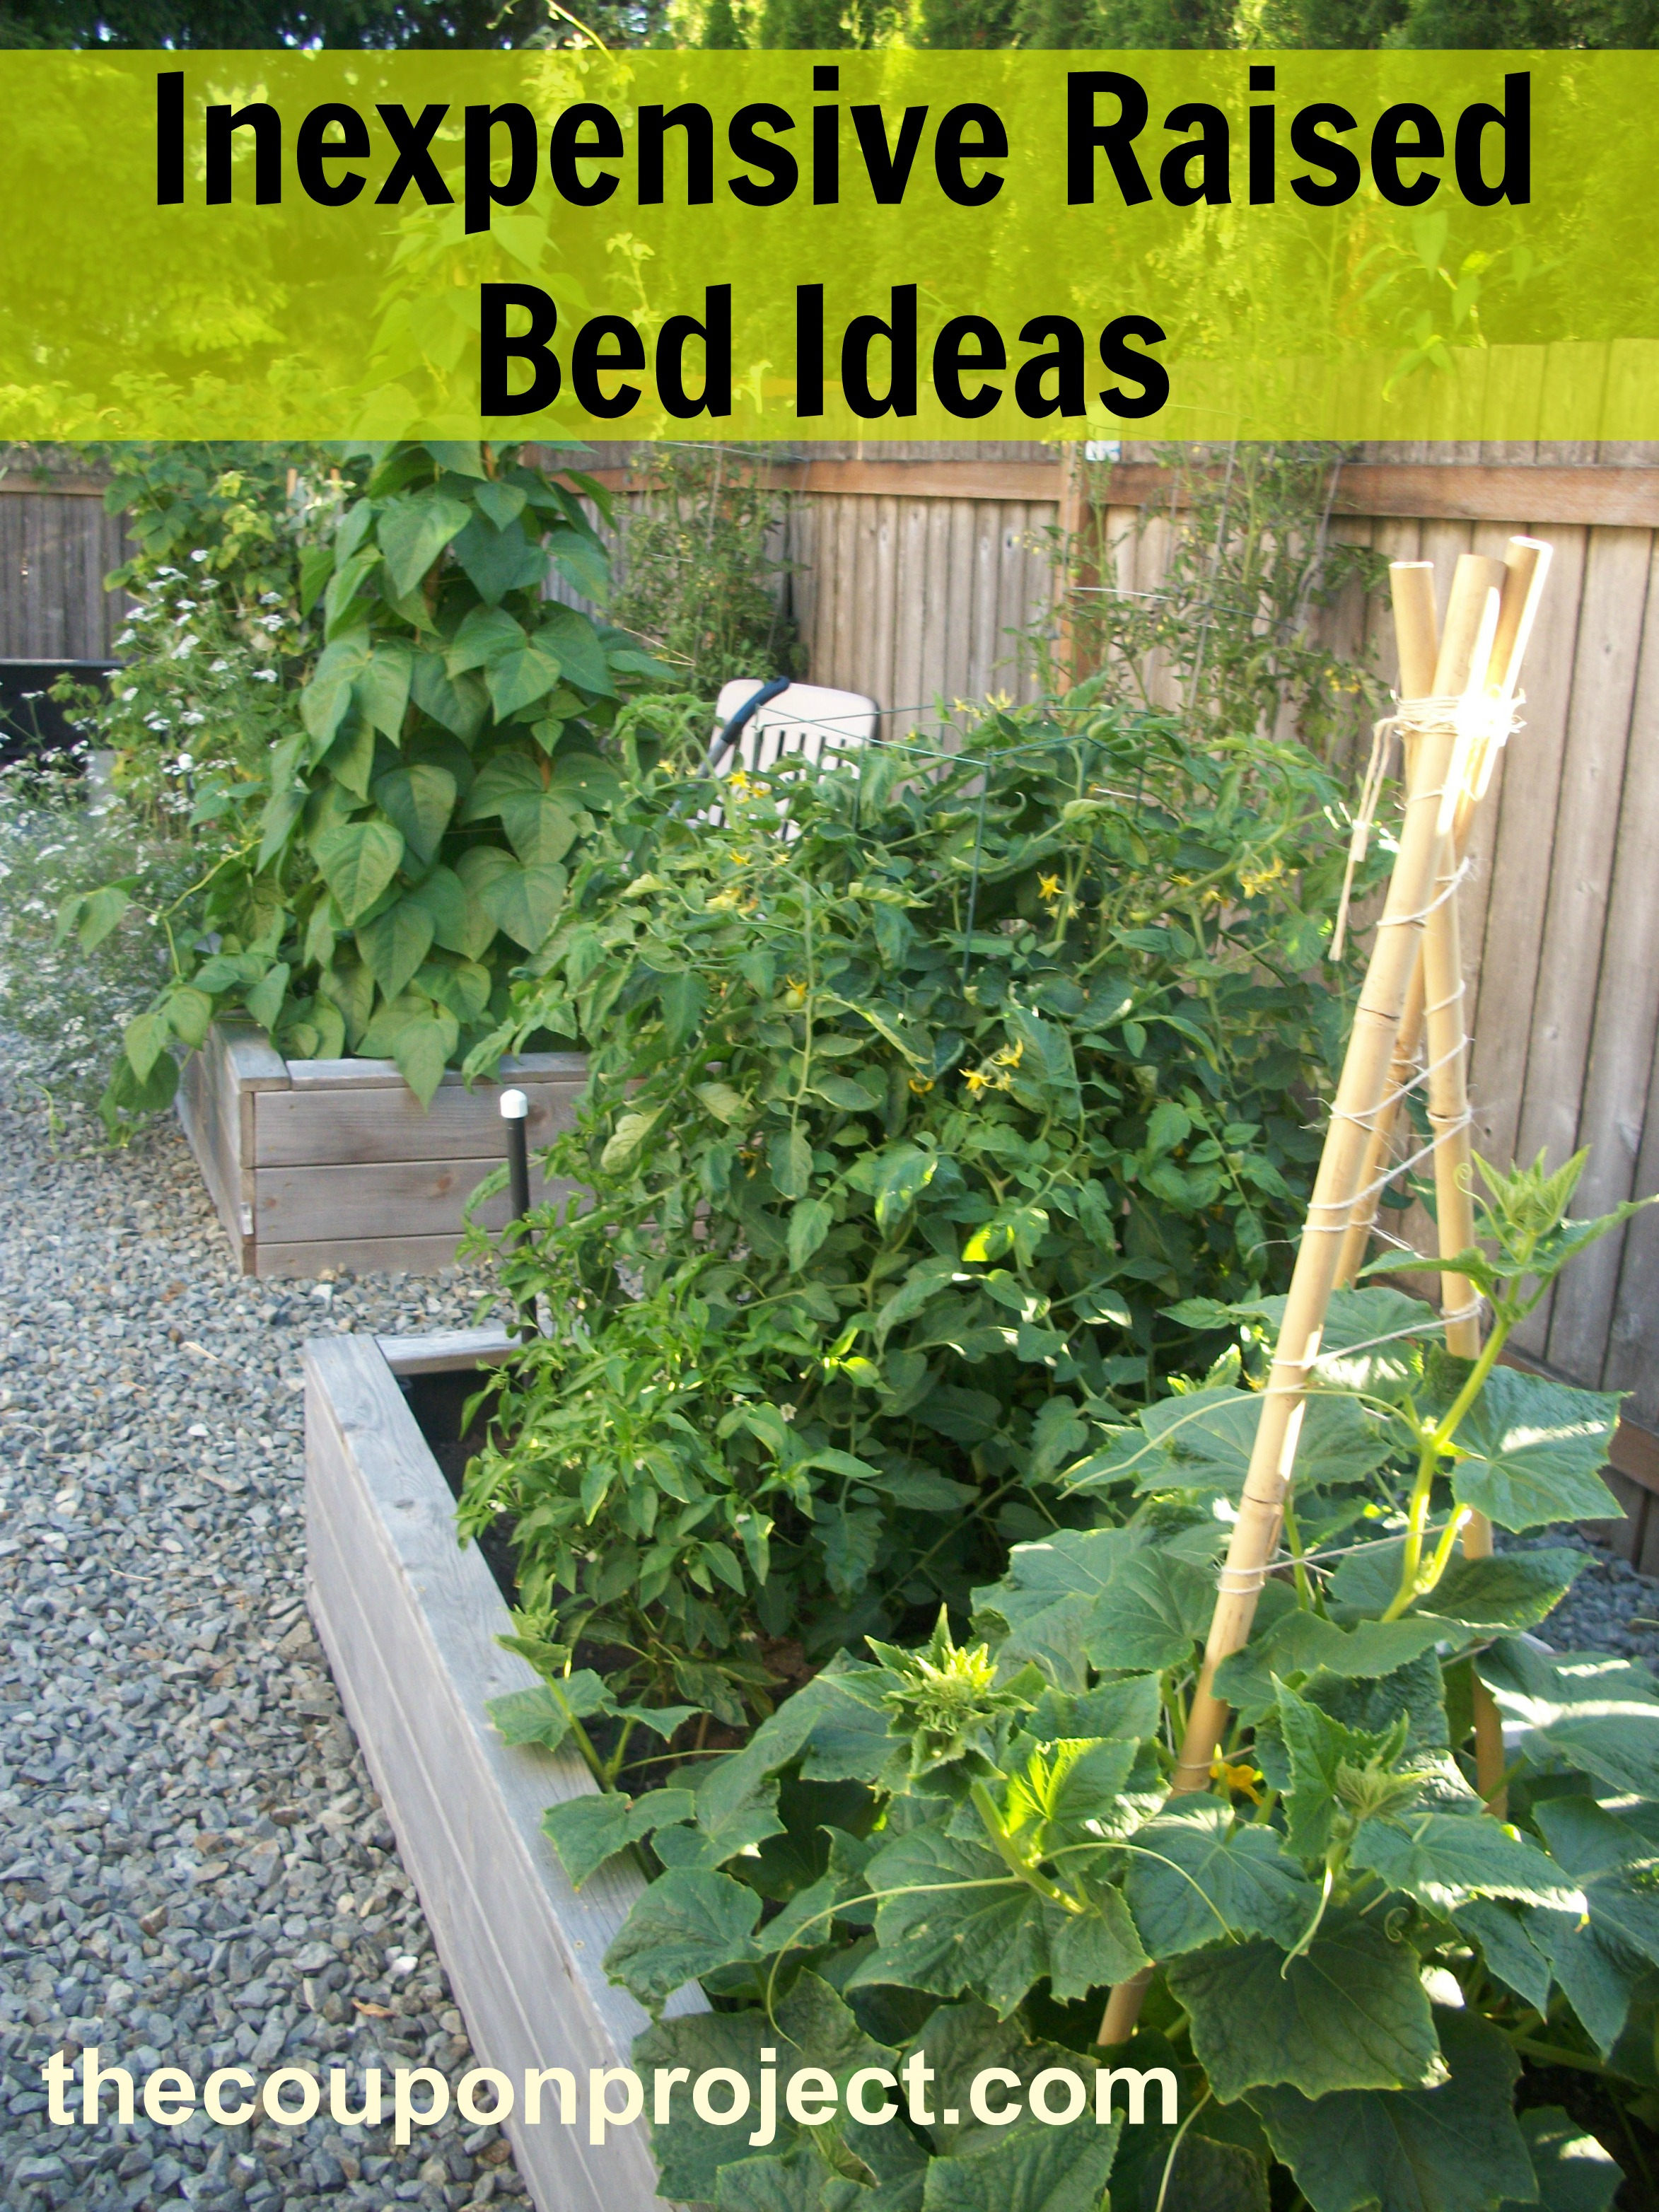 Raised Bed Garden Design Ideas vegetable garden layout ideas ubest garden reference How To Make Inexpensive Raised Beds Four Different Ideas